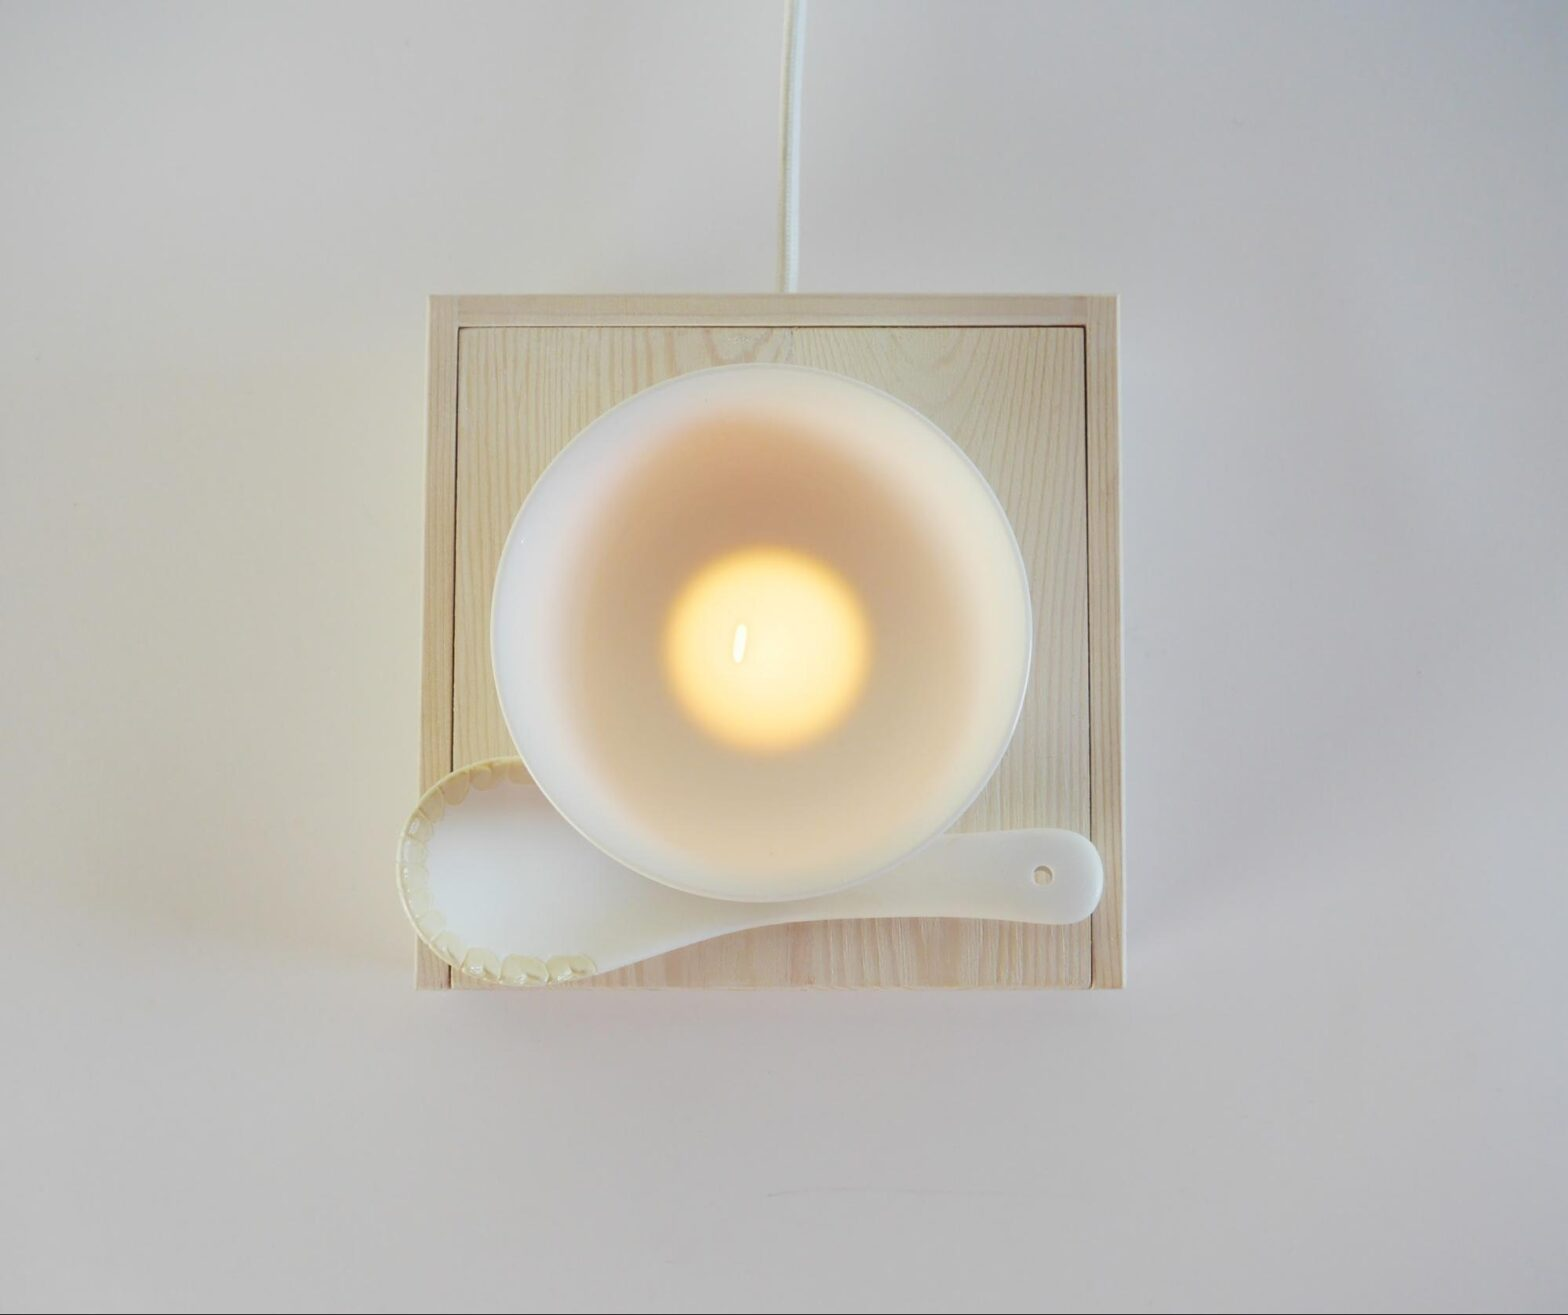 Frank Lee, The Last Grain, 2019. 15 cm x 15 cm, Porcelain spoon and bowl on wooden light box. Height variable, 5 unique pieces in series..